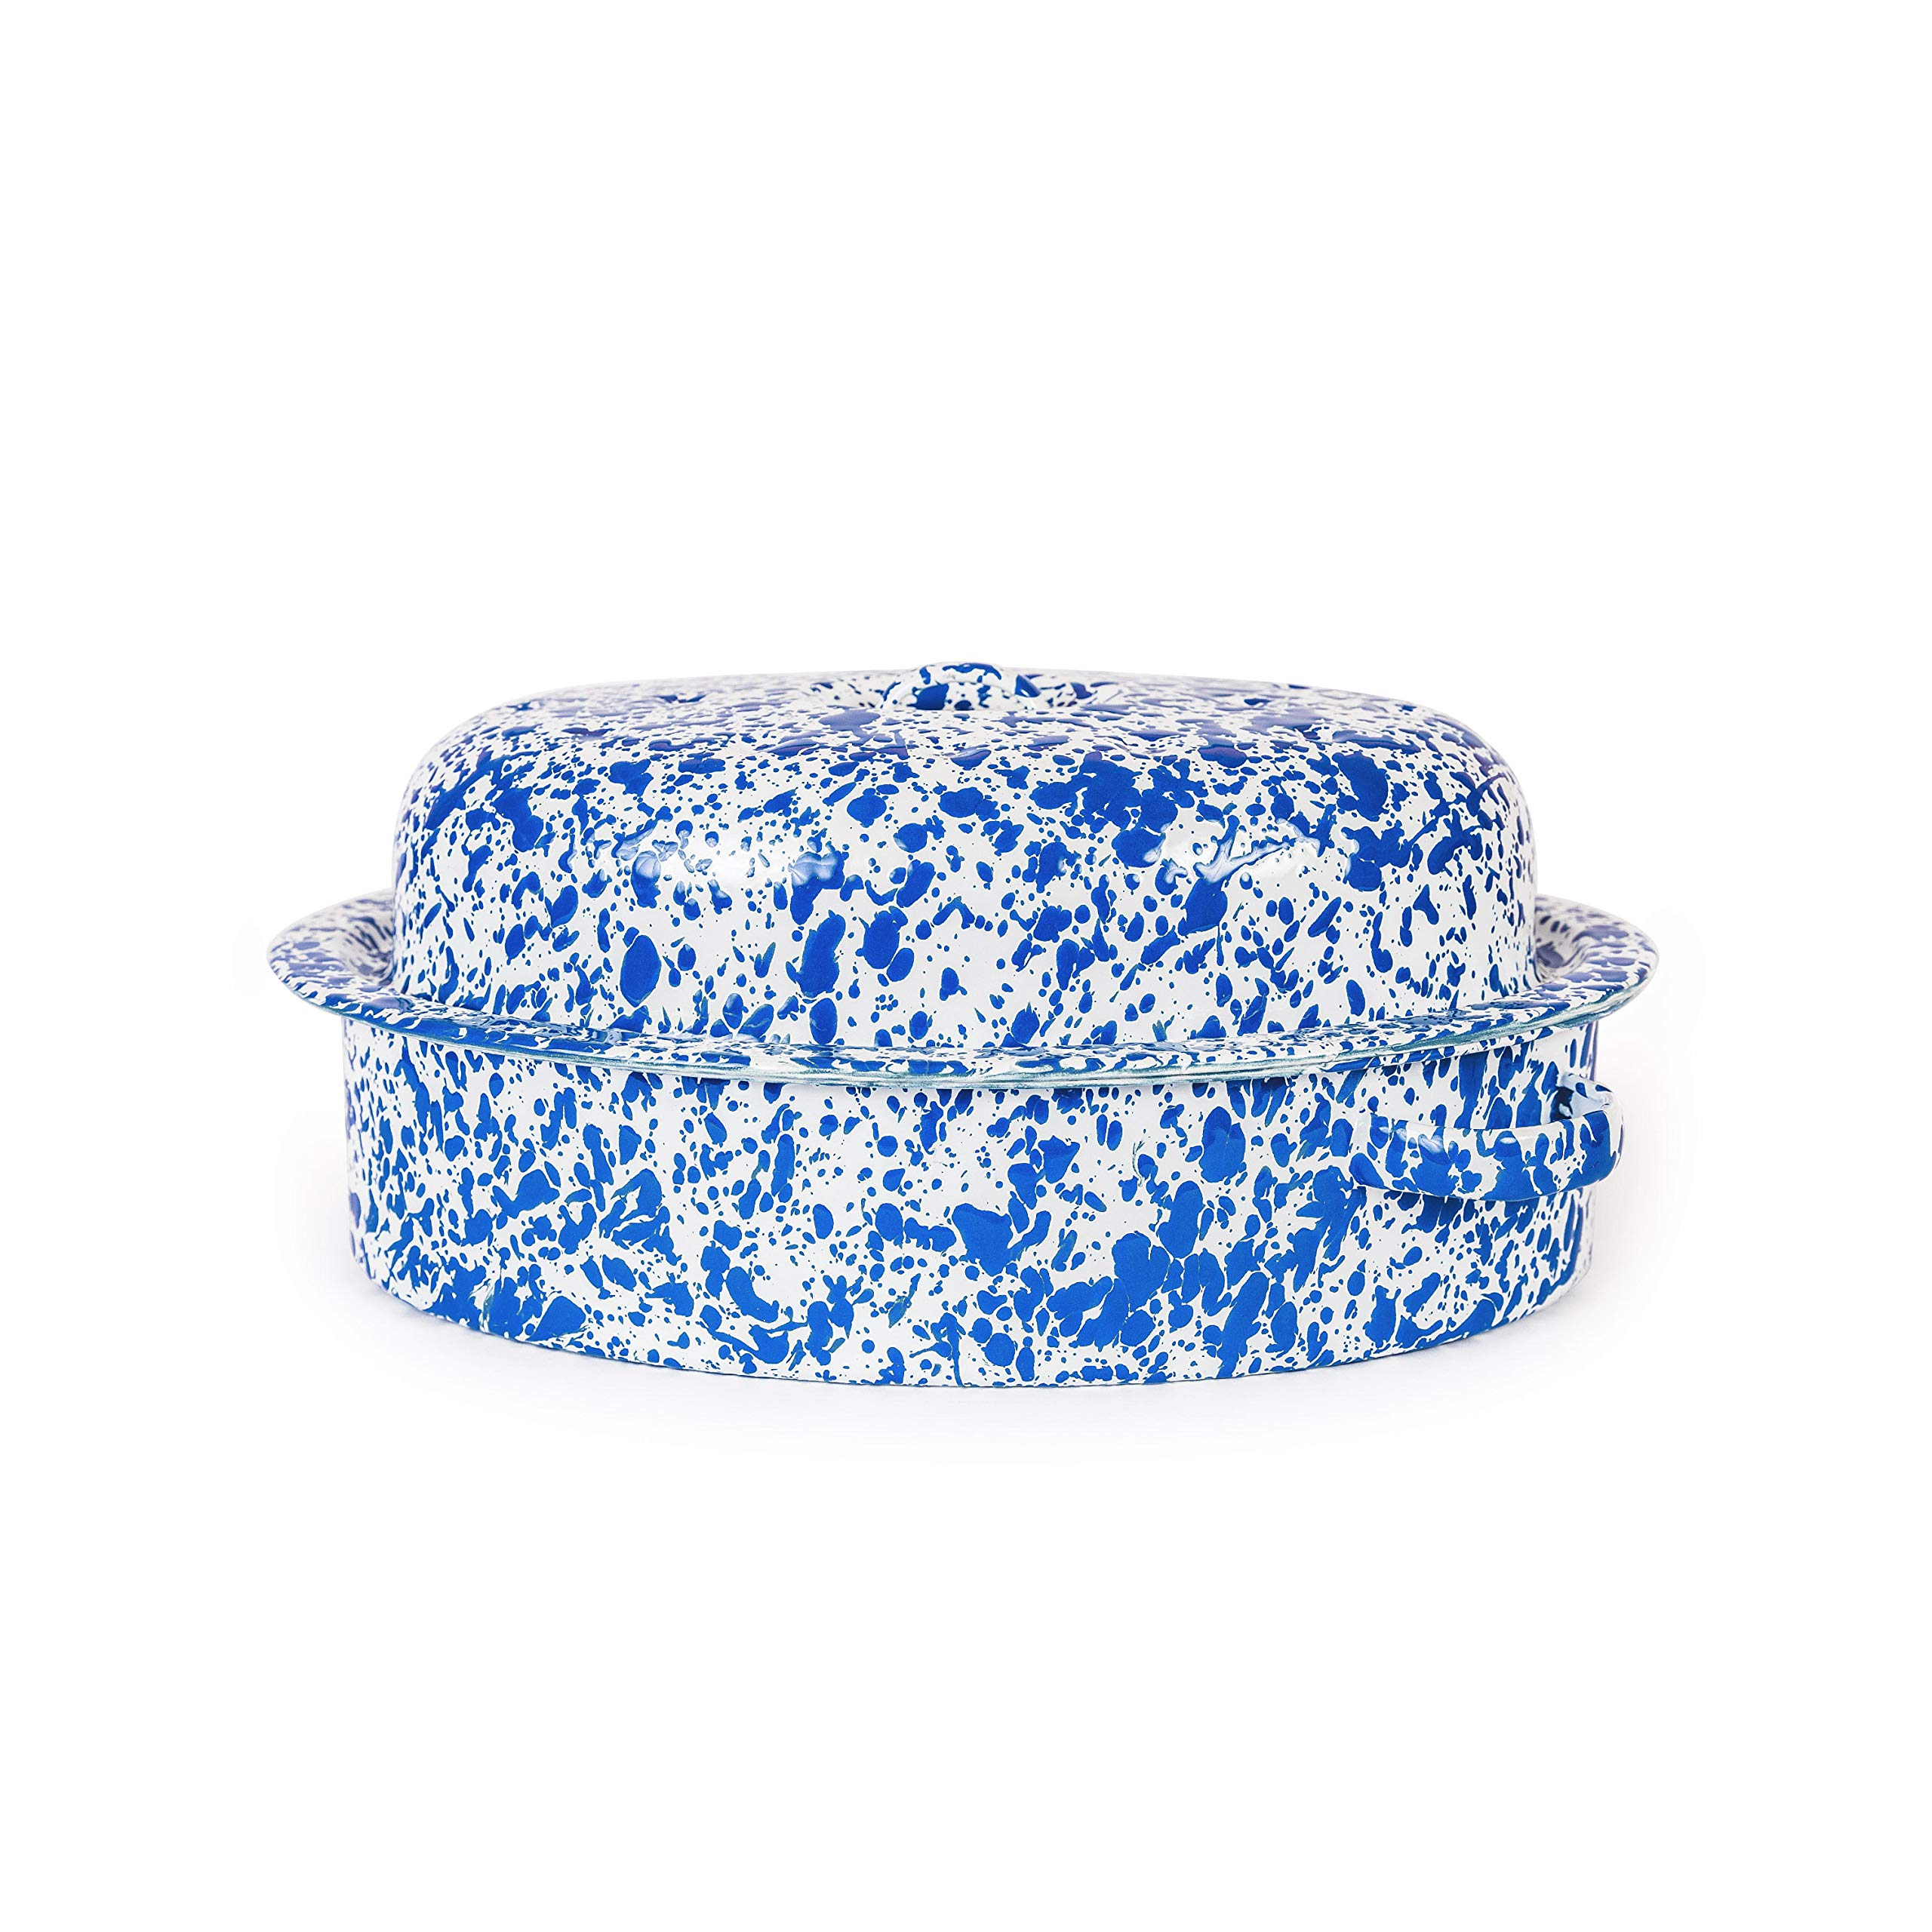 Enamelware Oval Covered Roaster, 3 quart, Blue/White Splatter by Crow Canyon Home